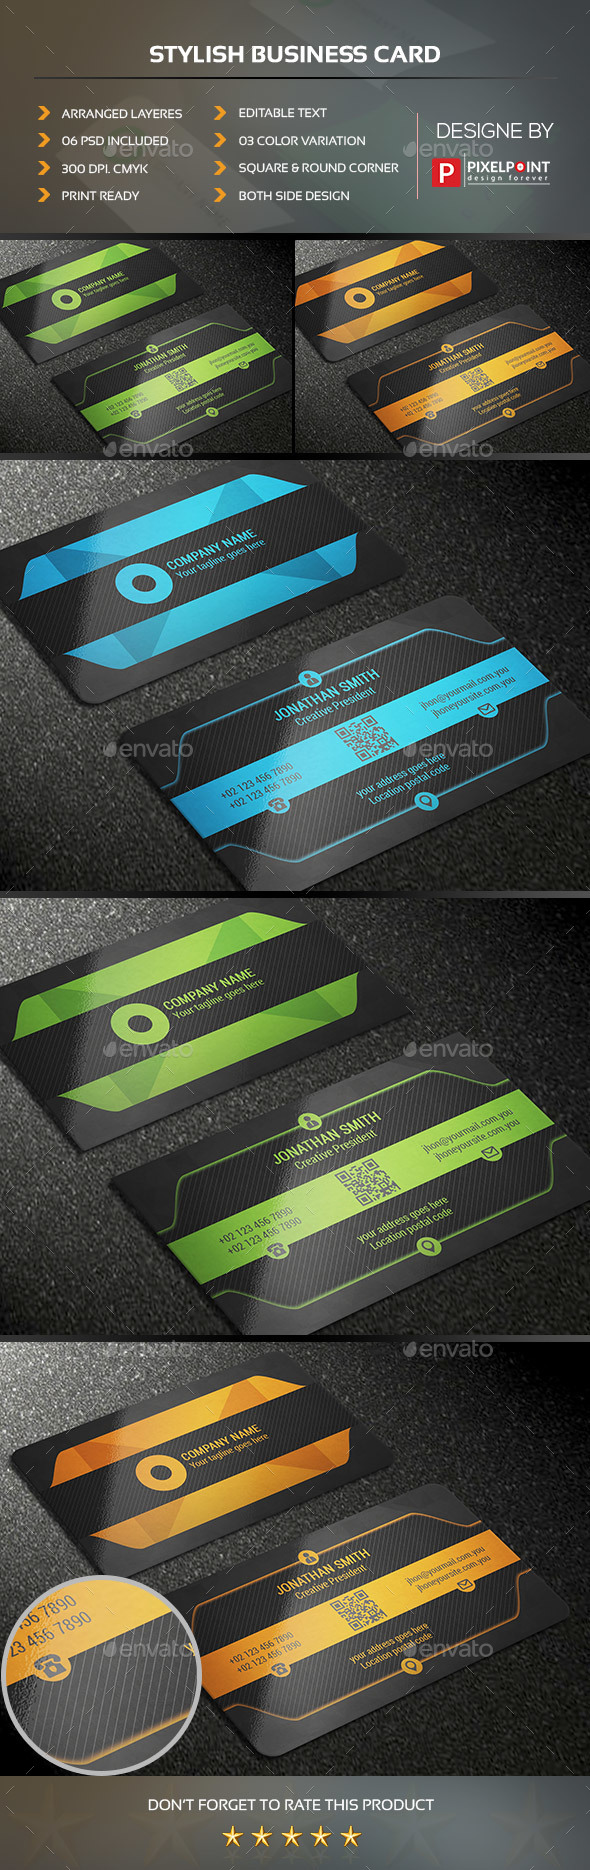 Stylish Business Card Stylish Business Cards Business Card Black Business Cards